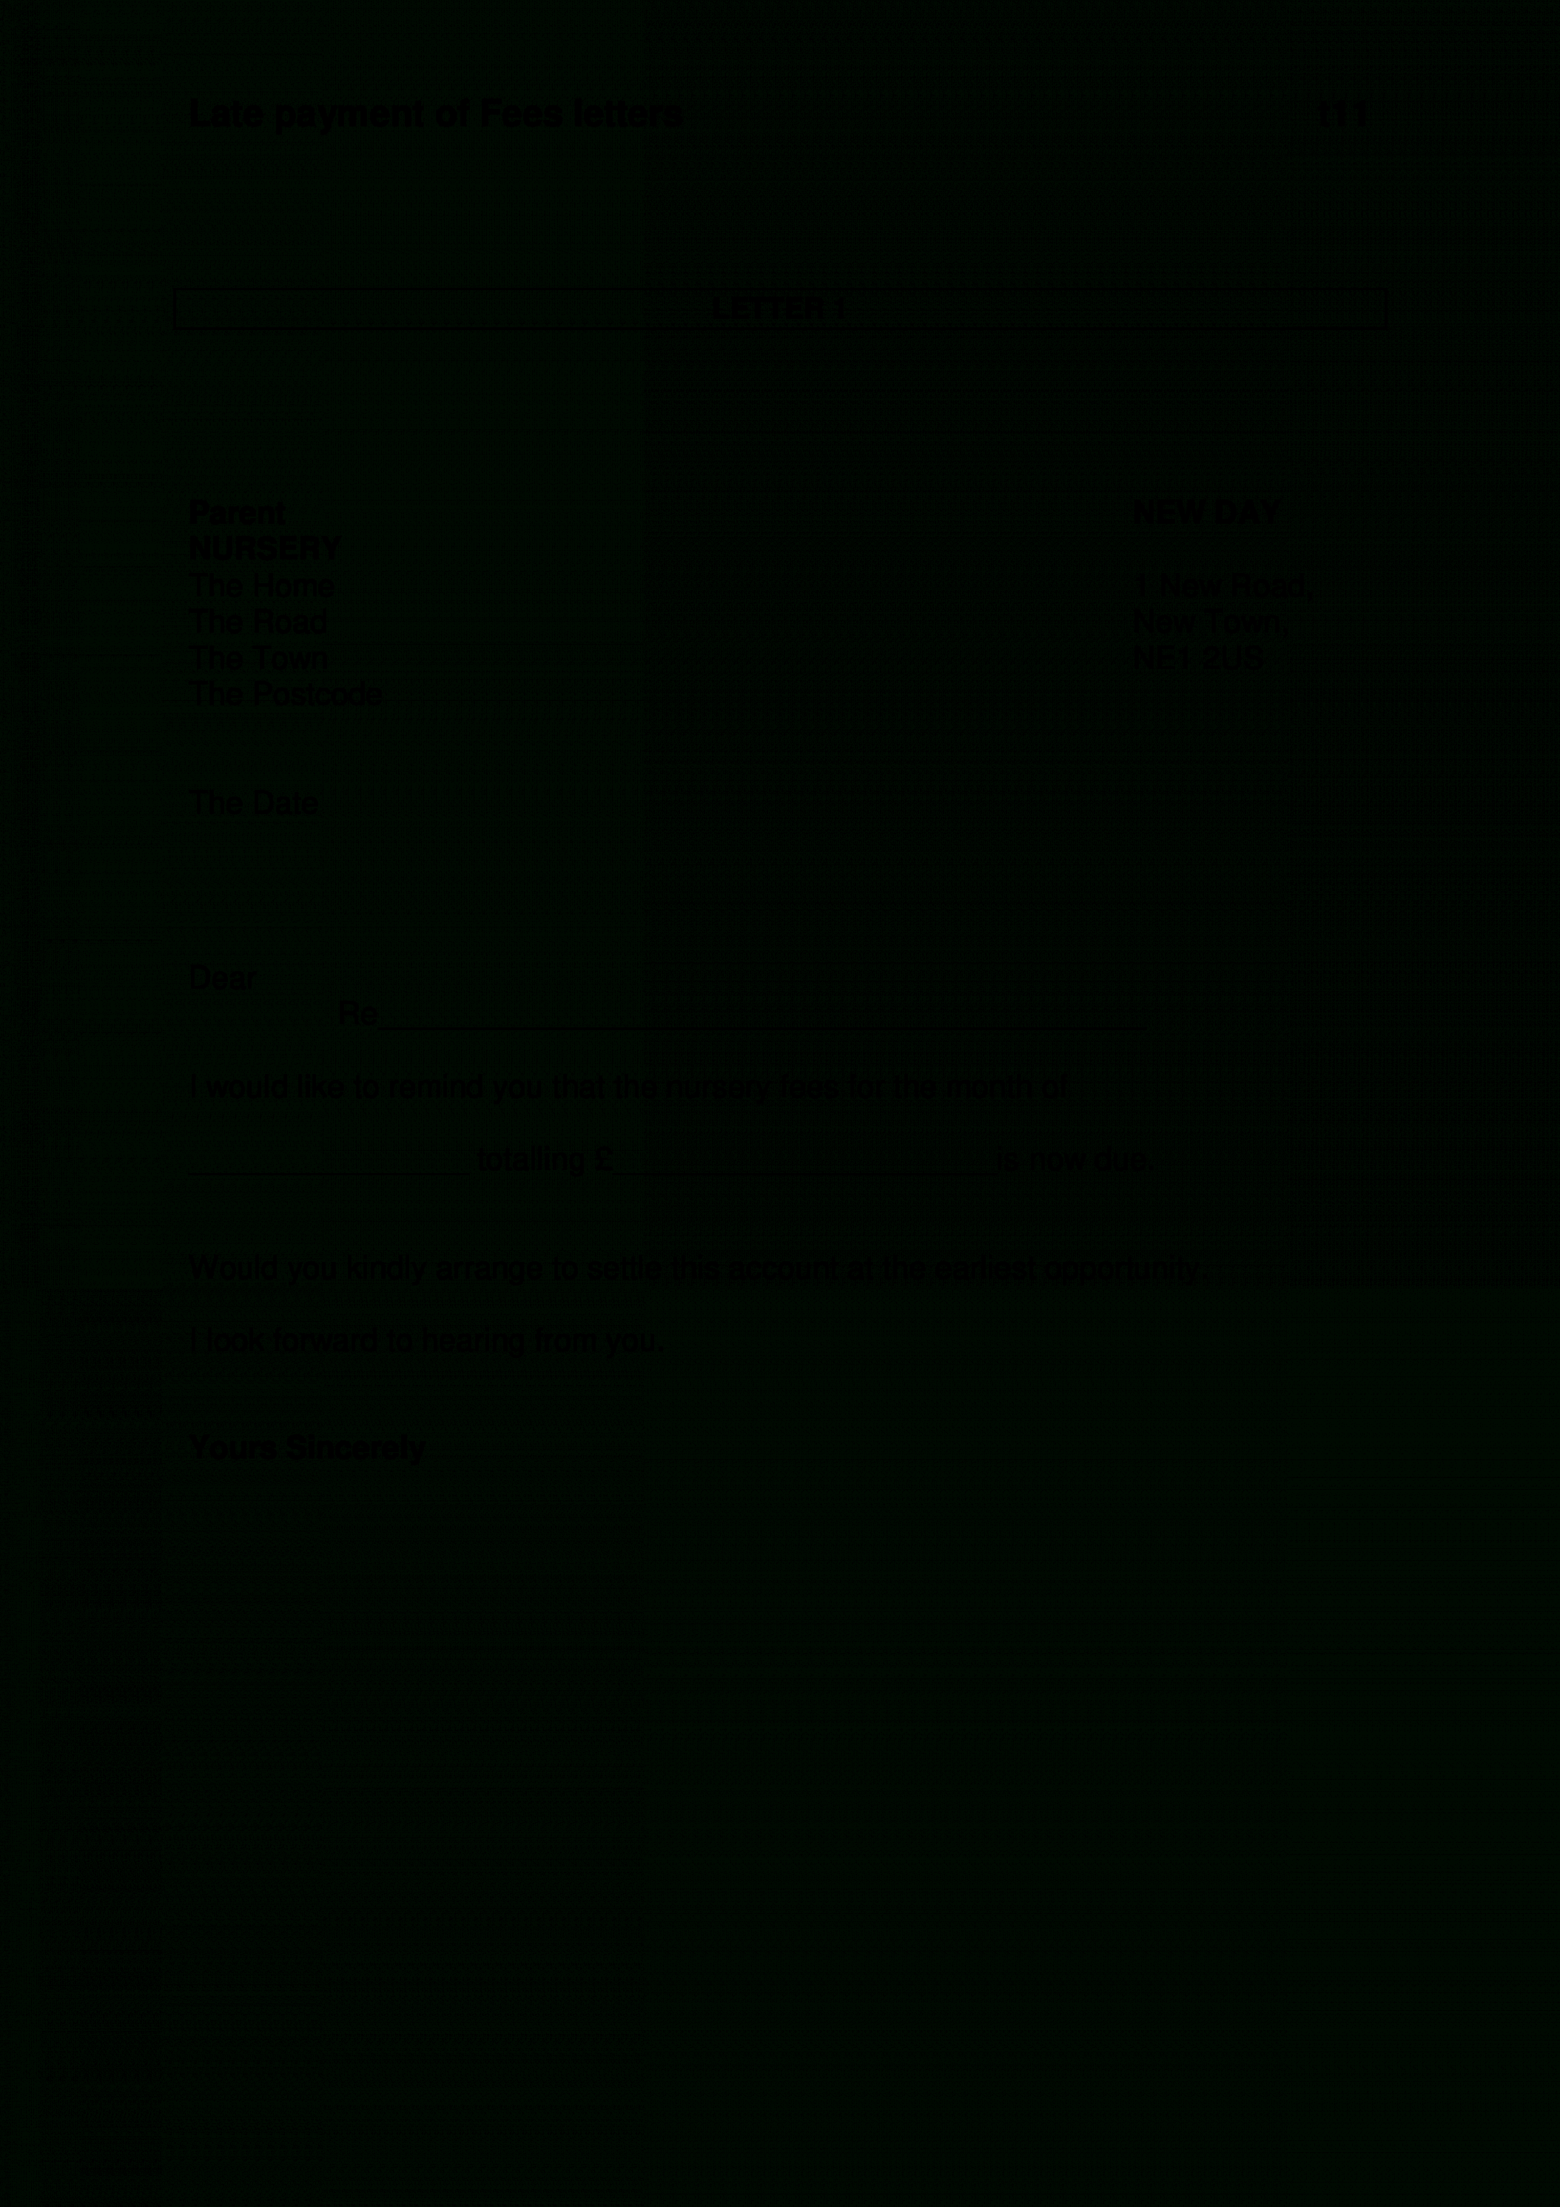 free free late payment letter  templates at allbusinesstemplates late payment letter template doc